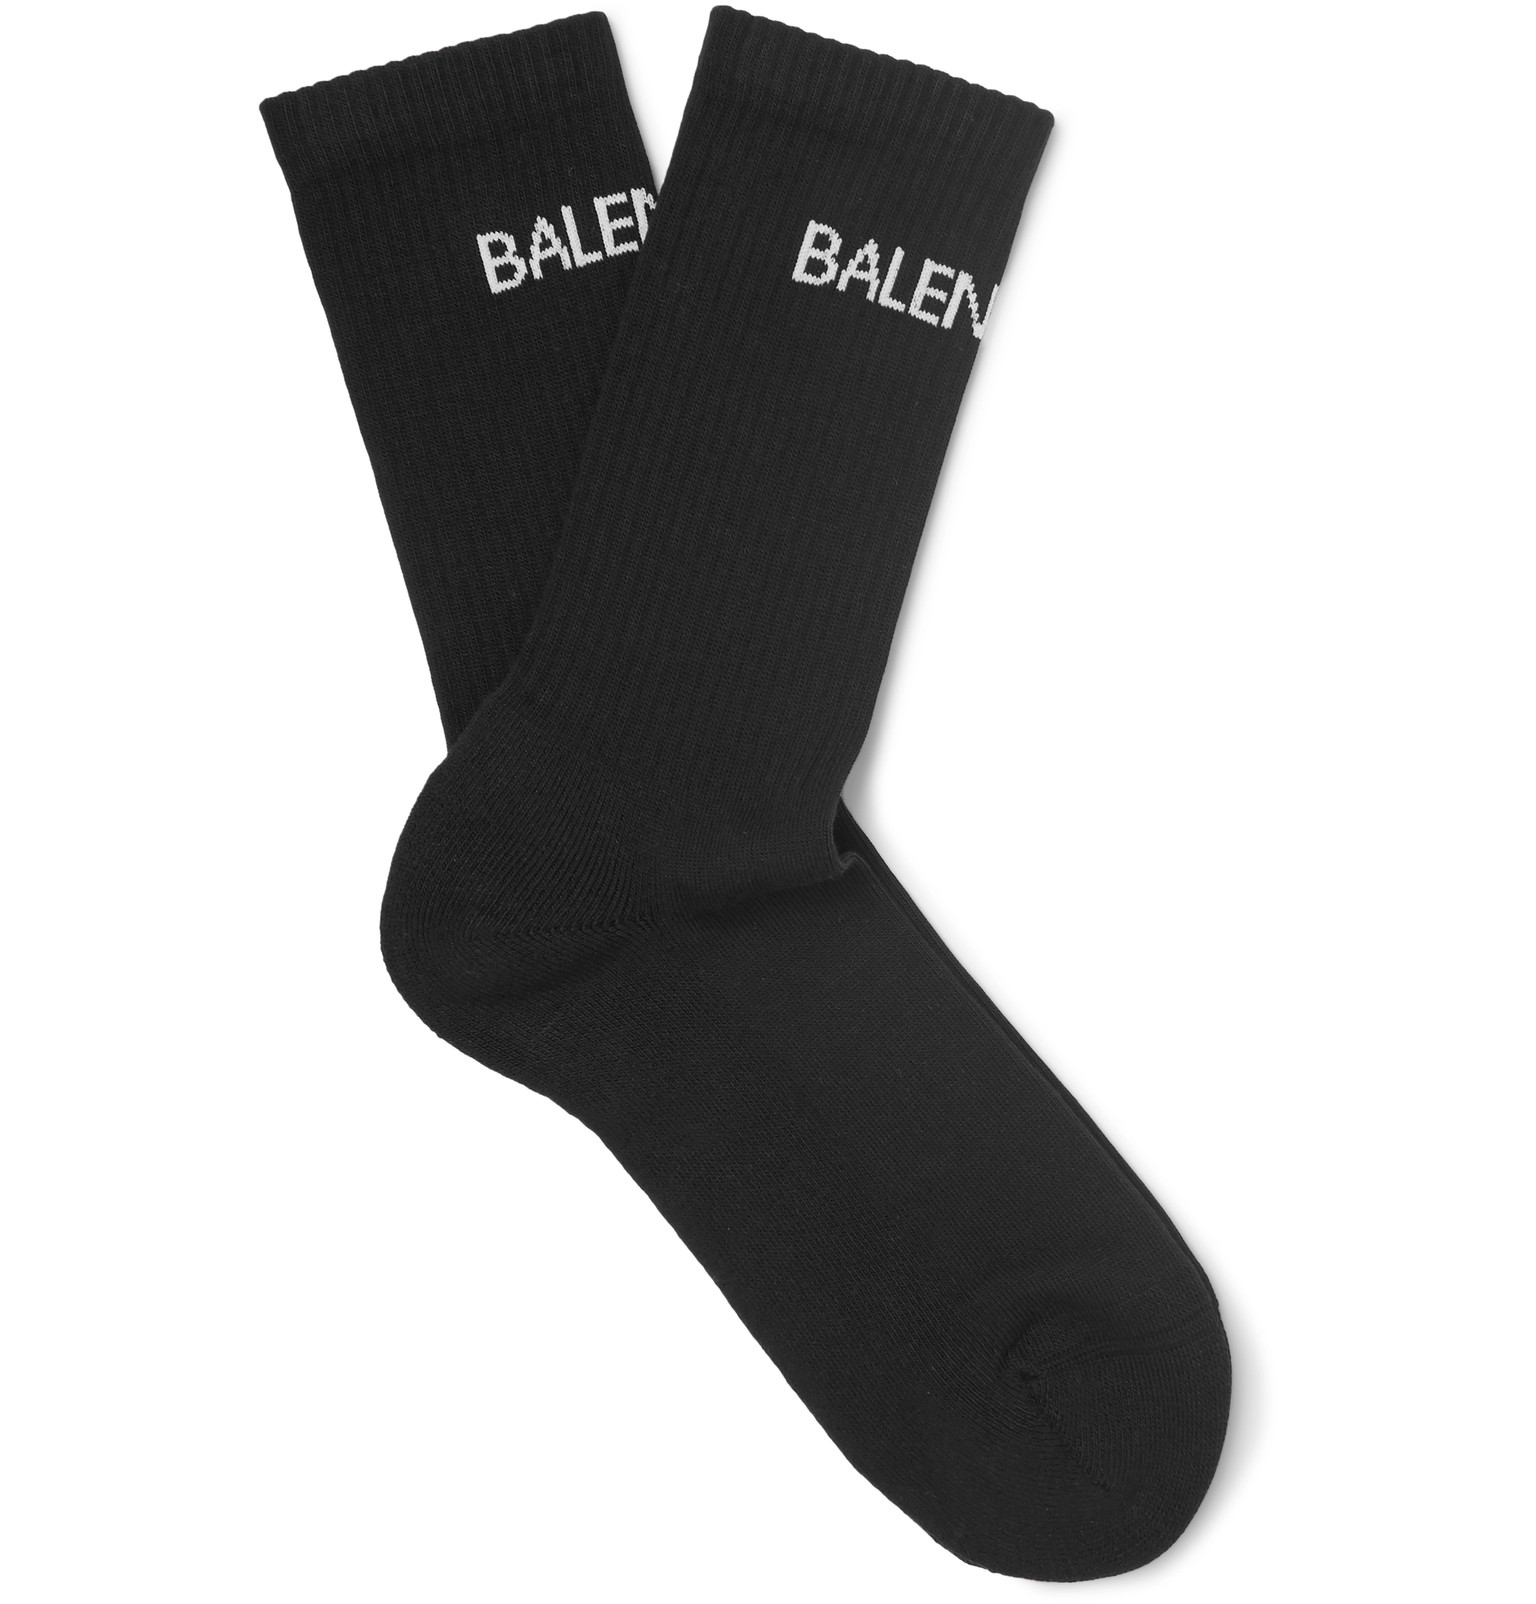 Balenciaga Intarsia Stretch Cotton-blend Socks - Black xPG0J1v3wo